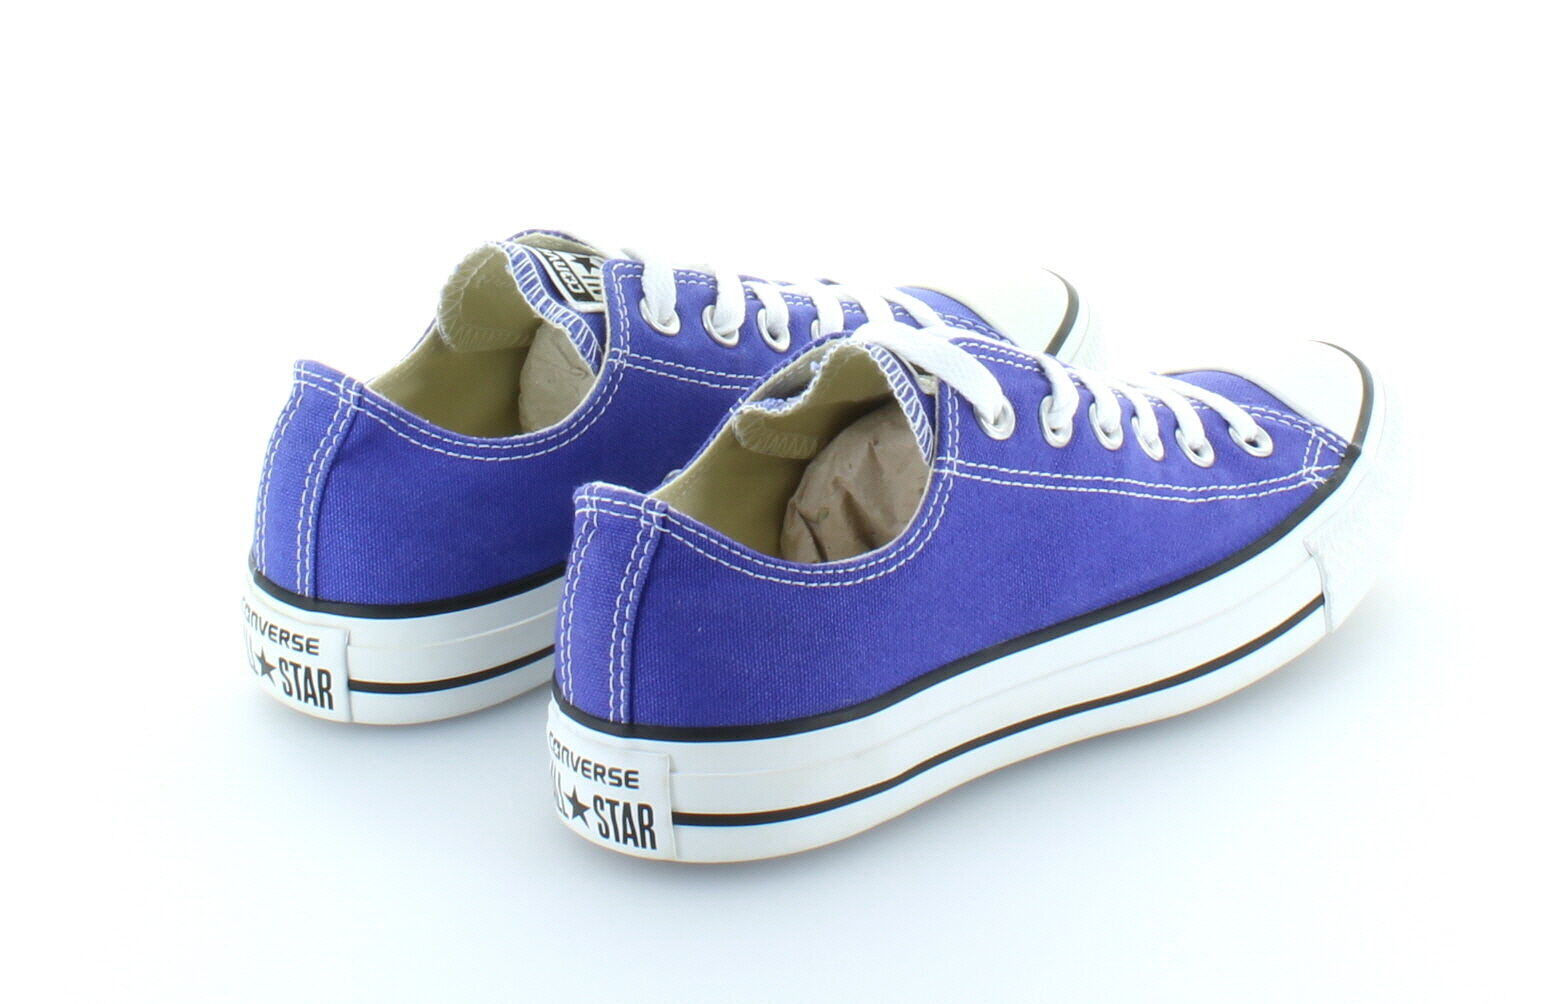 Converse All Star Chuck Taylor Ox Periwinkle Periwinkle Ox talla 37,5 38,5 7bad2c